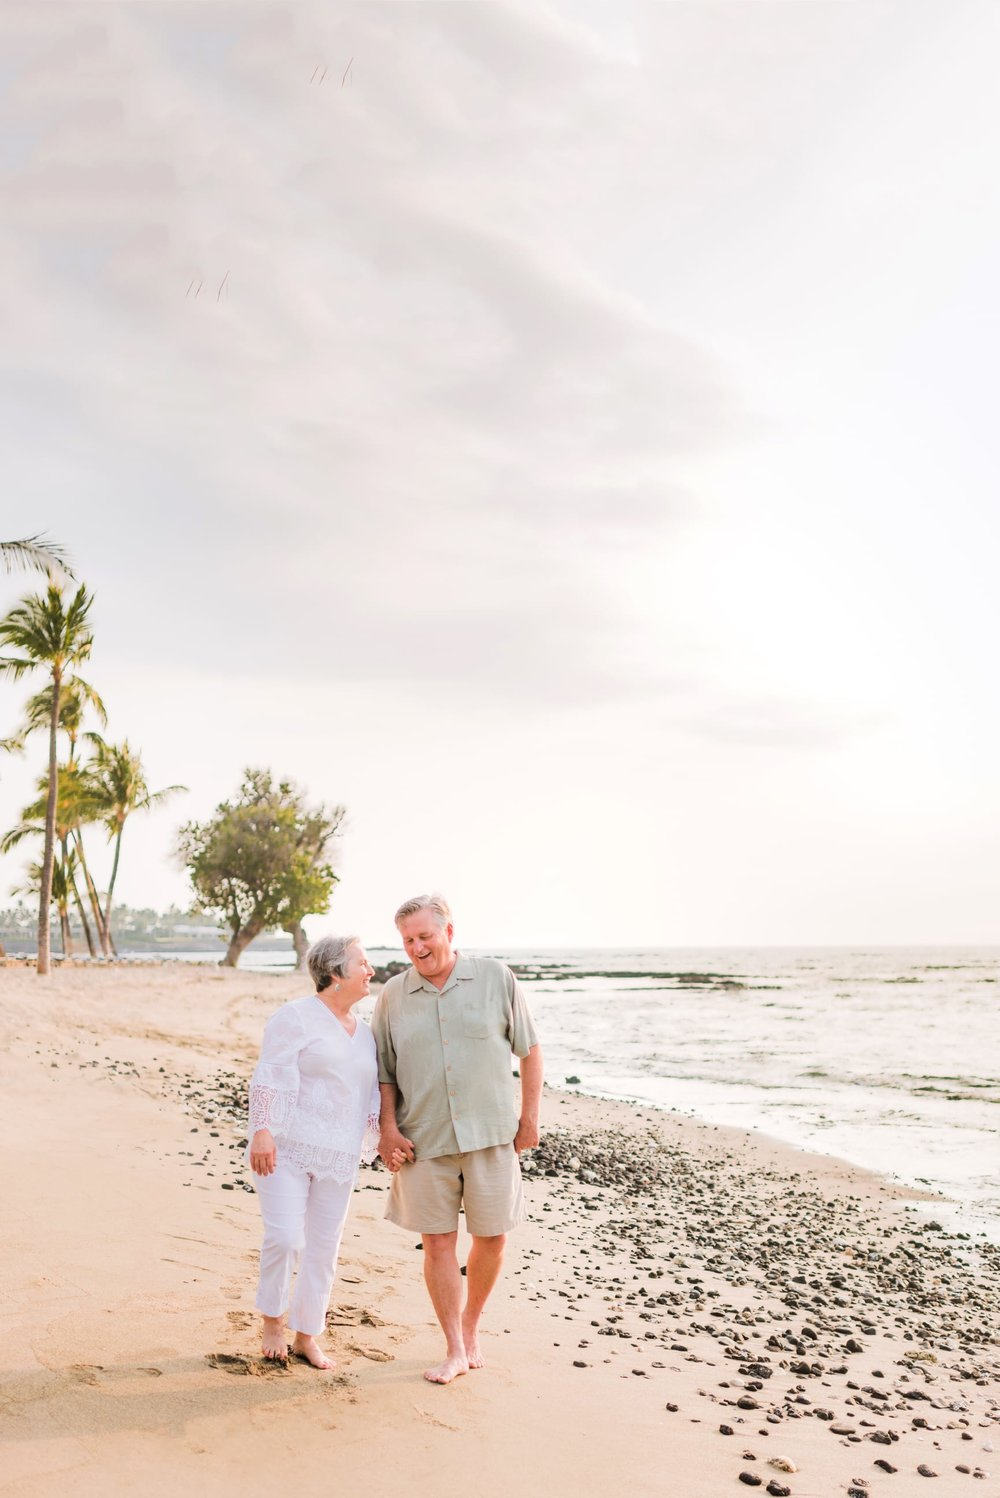 Hawaii-Family-Photos-Waikoloa-1.jpg